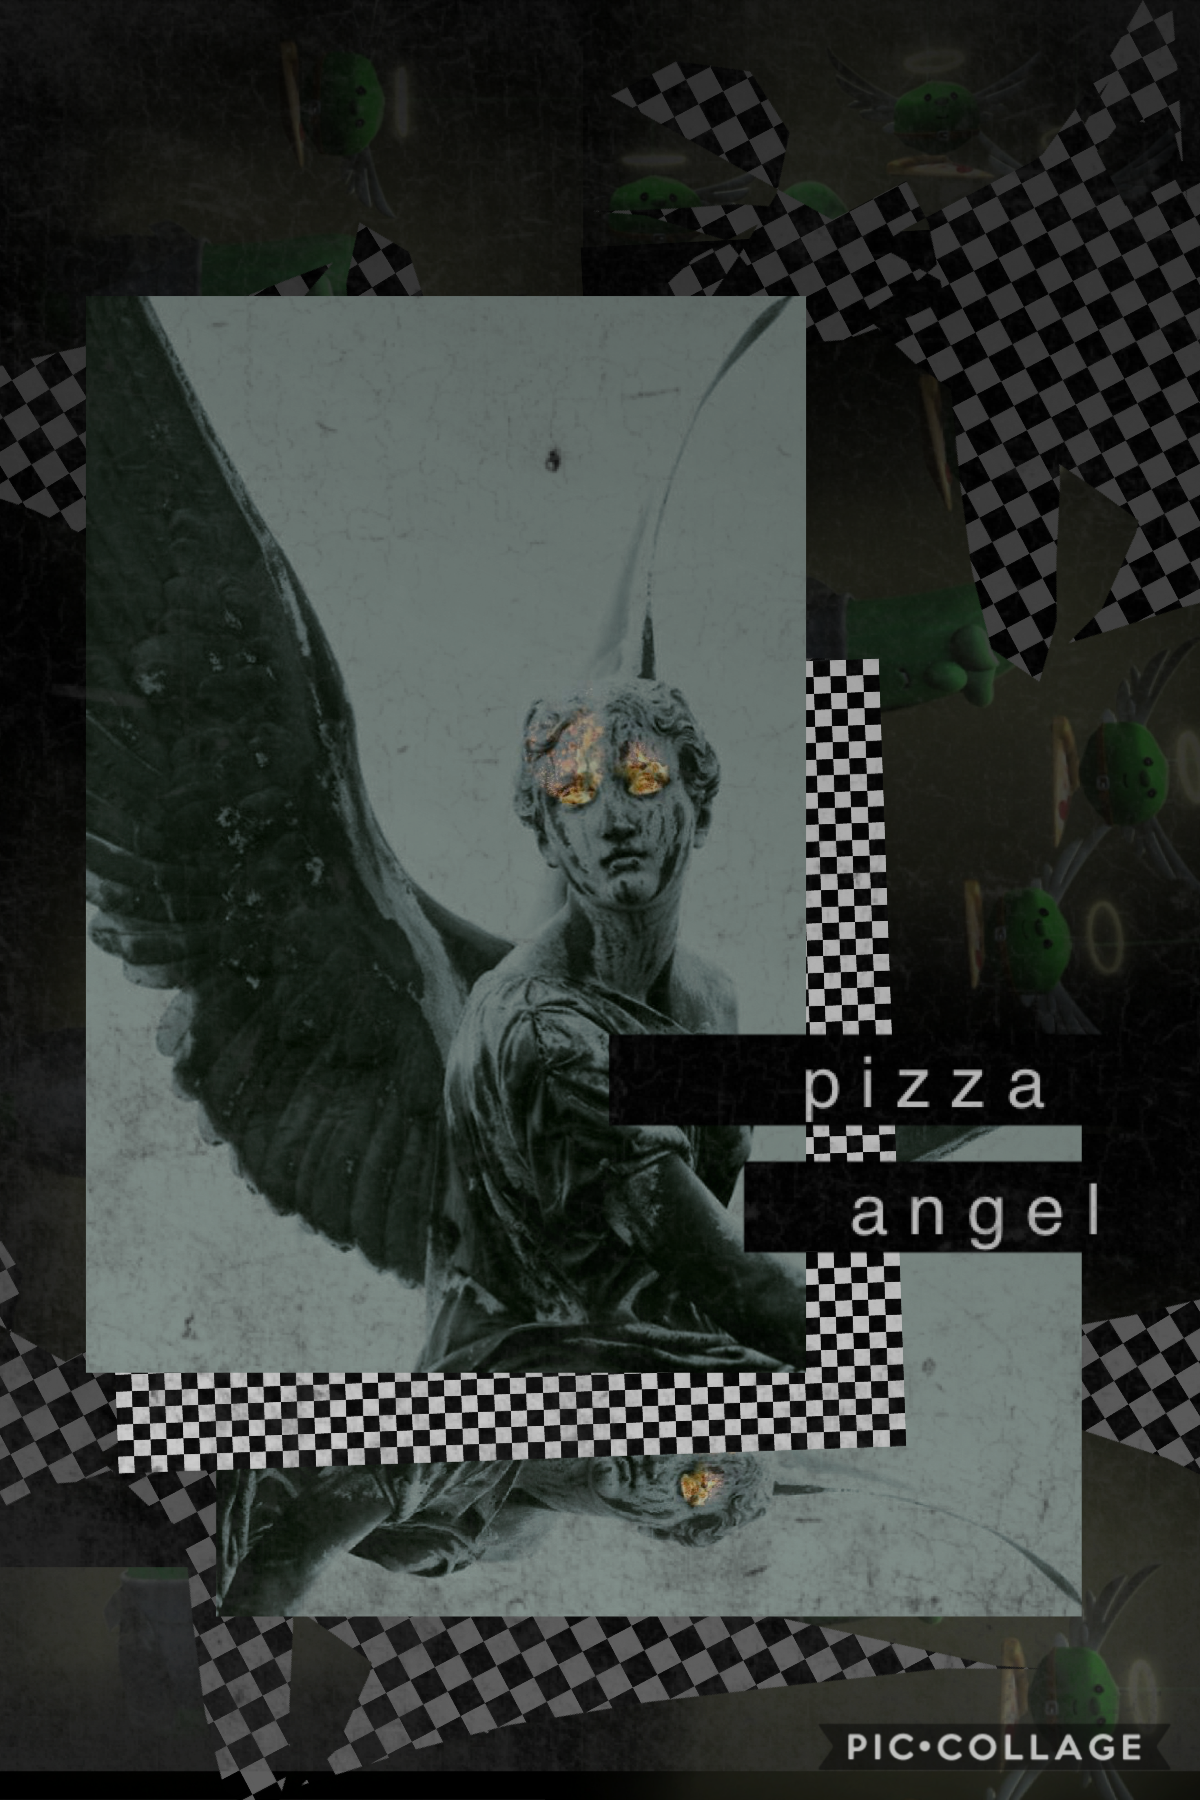 pizza angel, please come to me let's see if anyone notices this is crack from VeggieTales I made a playlist of weird crāp on Spotify so if y'all have any recommendations for that HMU ✌️